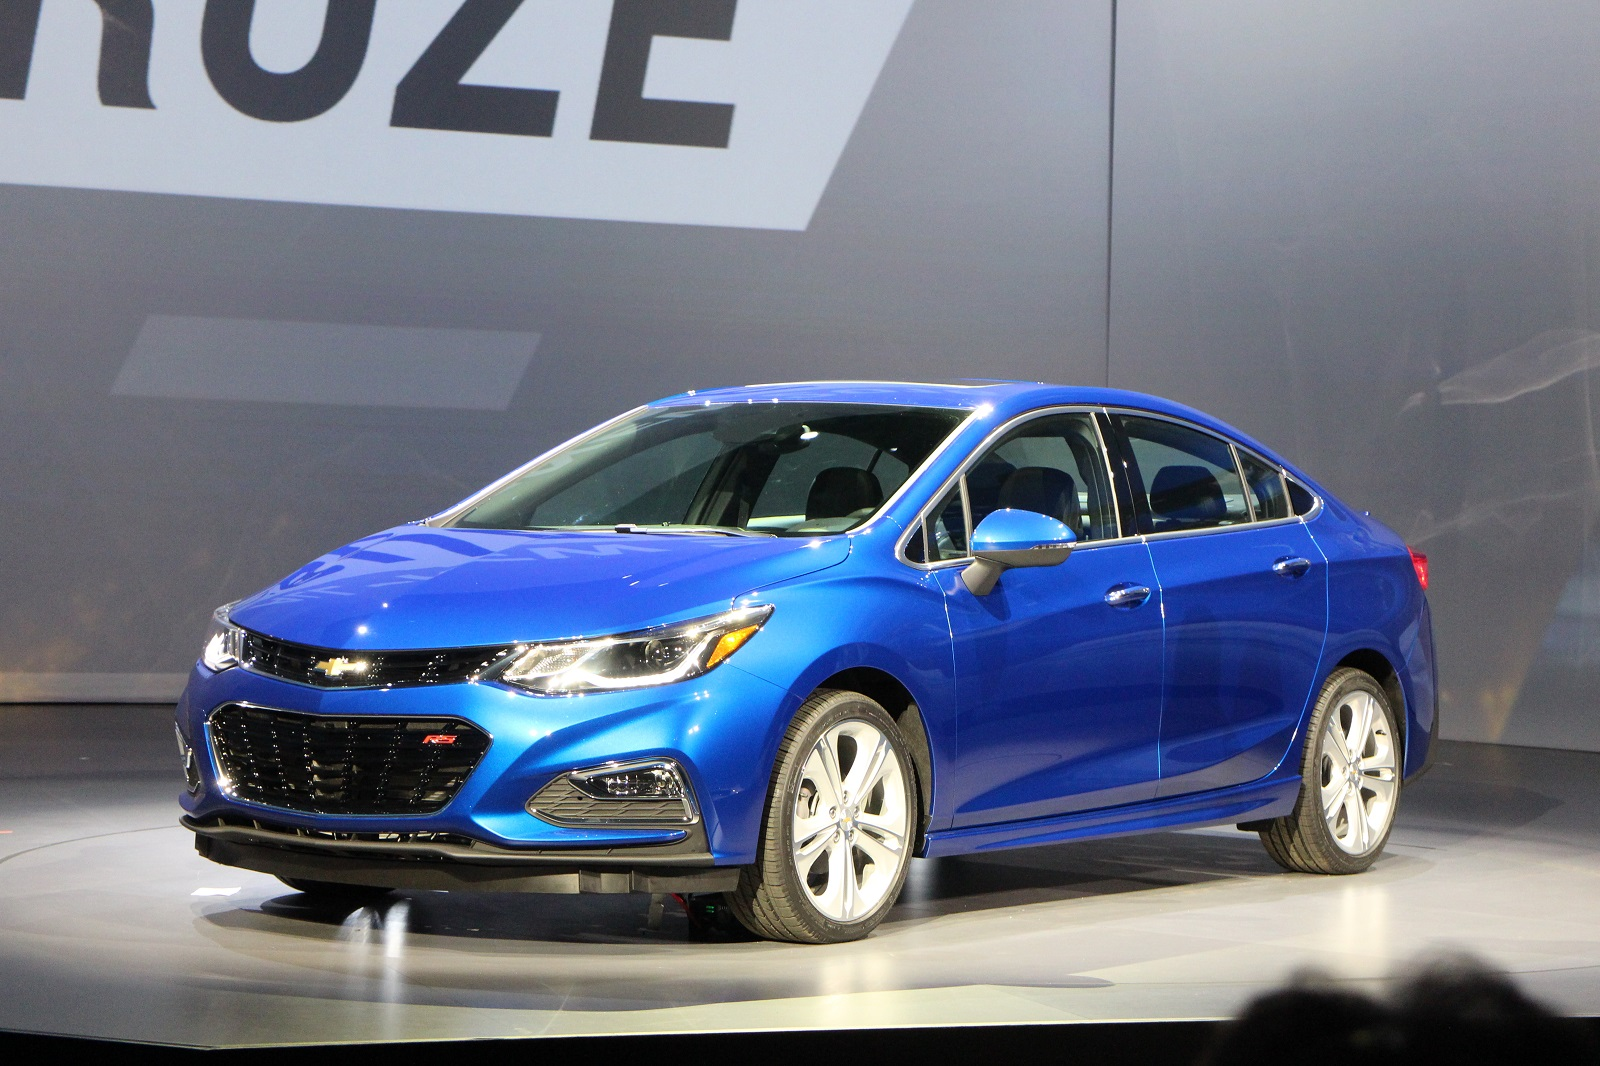 Innovative 2016 Chevrolet Cruze Sedan Unveiled 40MPG Highway Rating